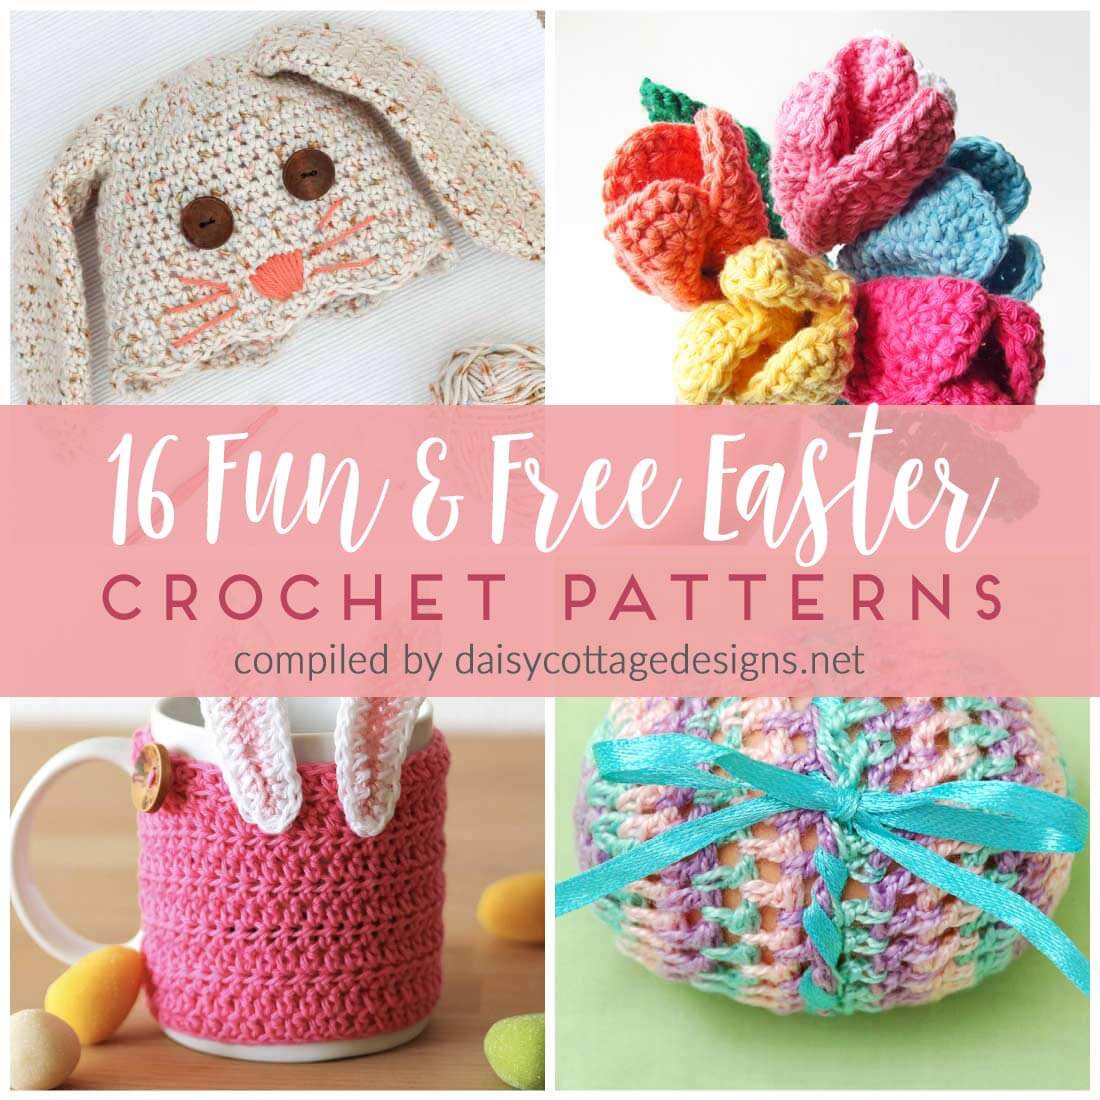 16 Free Crochet Patterns for Easter Daisy Cottage Designs